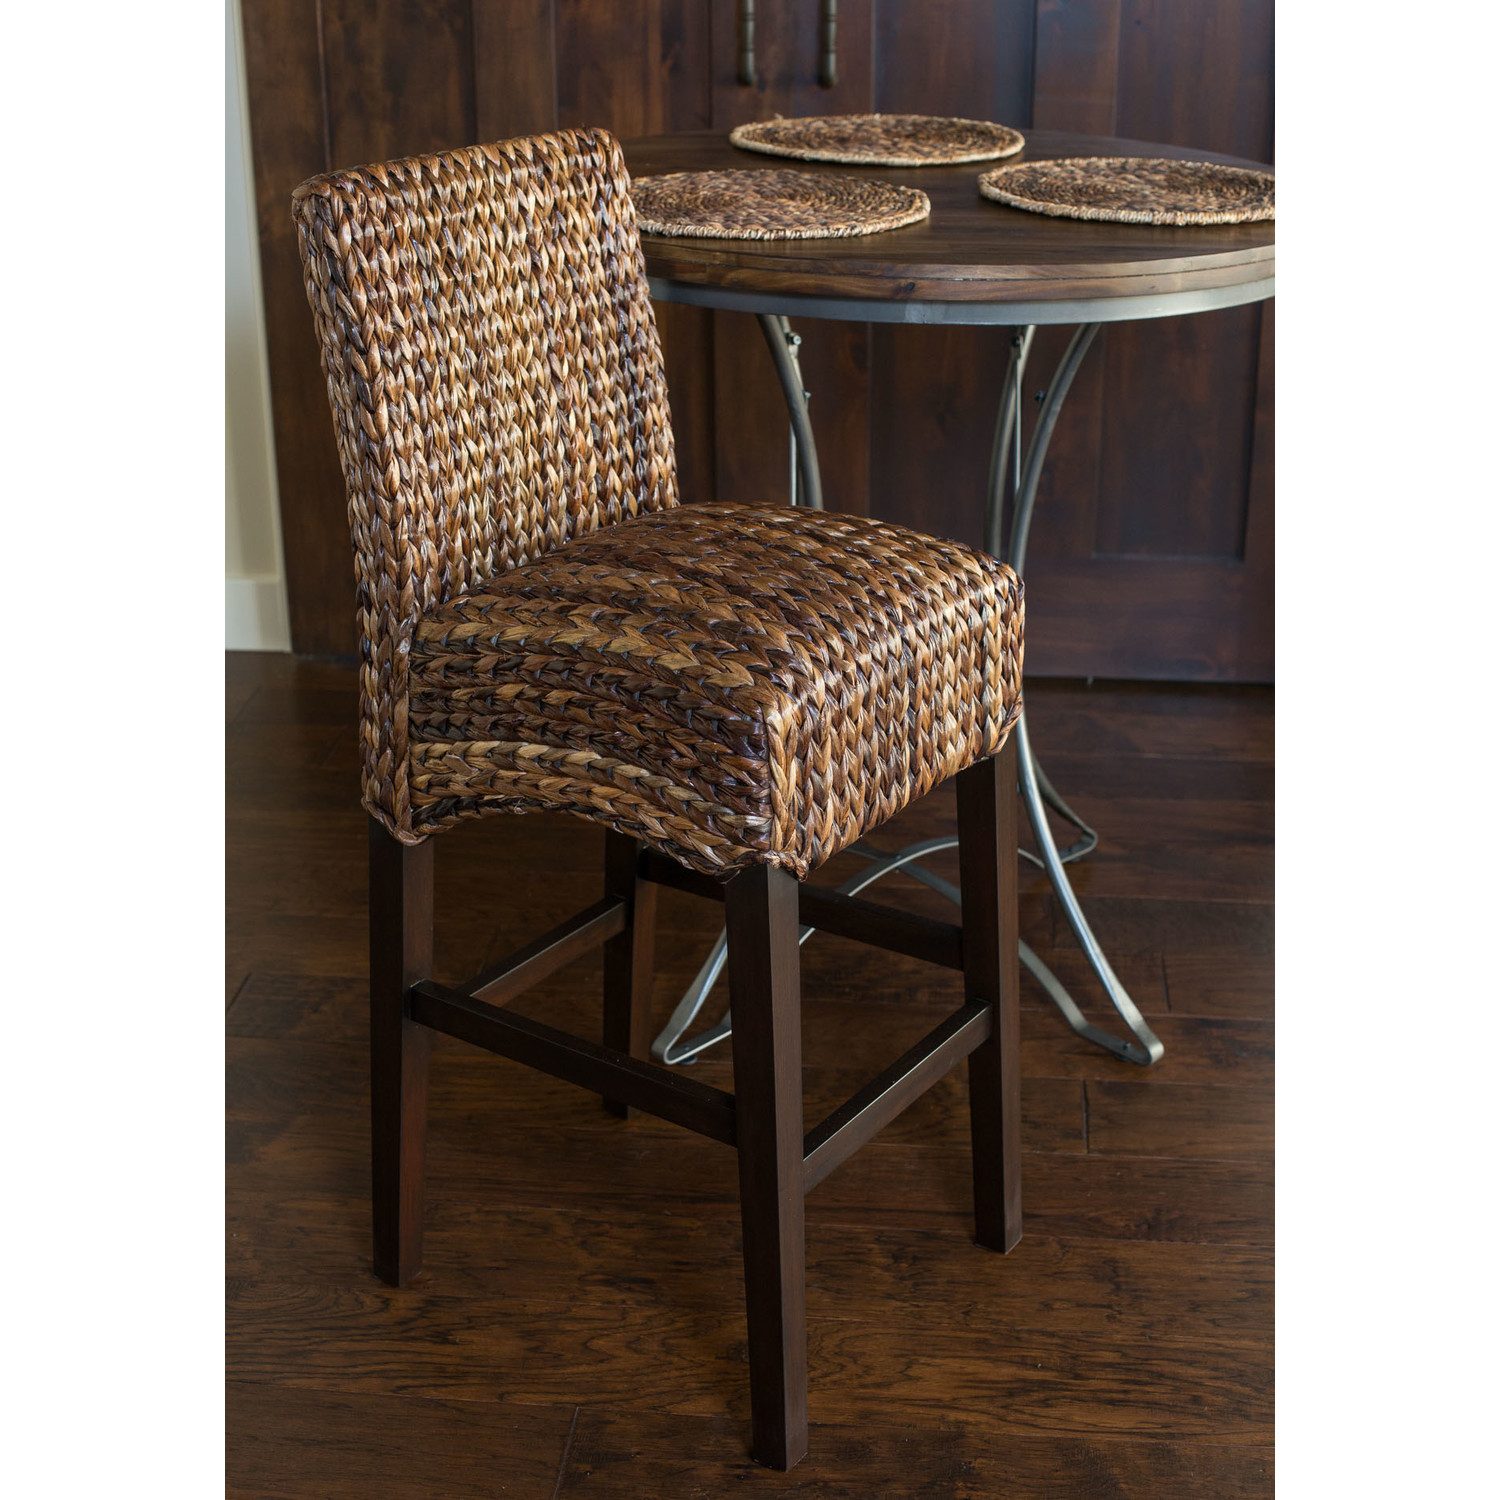 Unique Seagrass Counter Stool Homesfeed